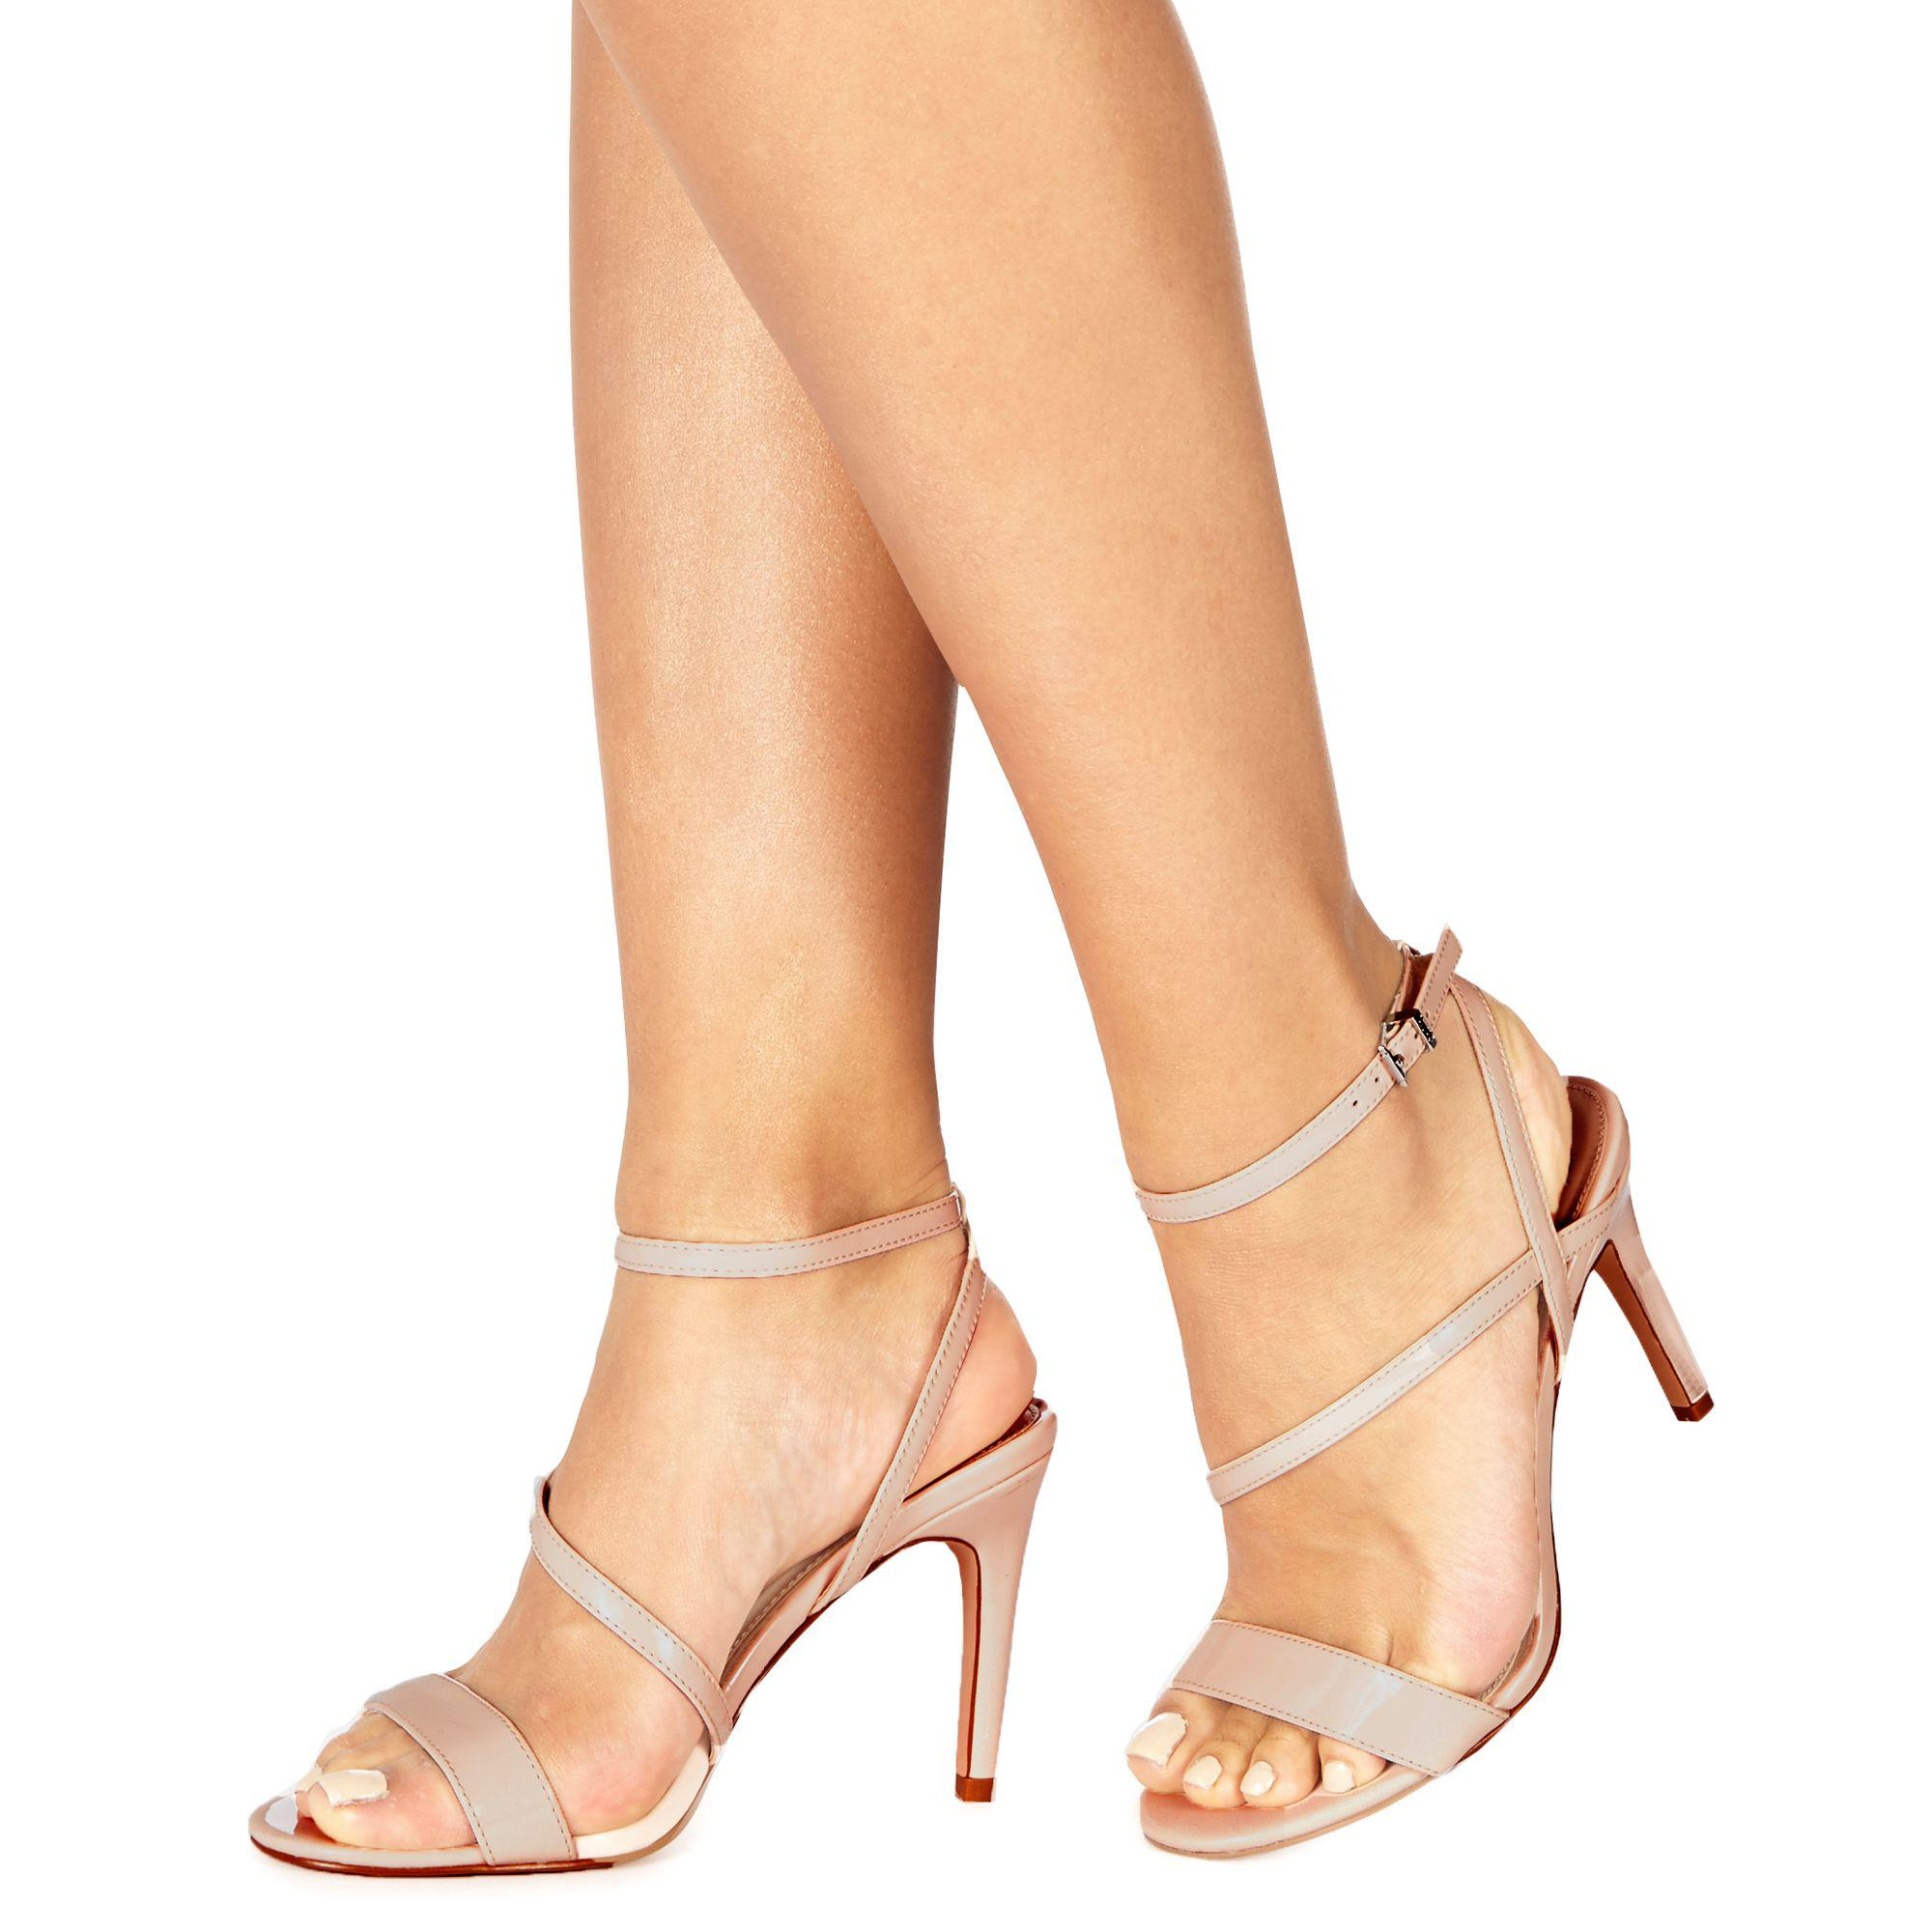 6243c66fc1c Faith Natural  delly  High Heel Wide Fit Ankle Strap Sandals in ...